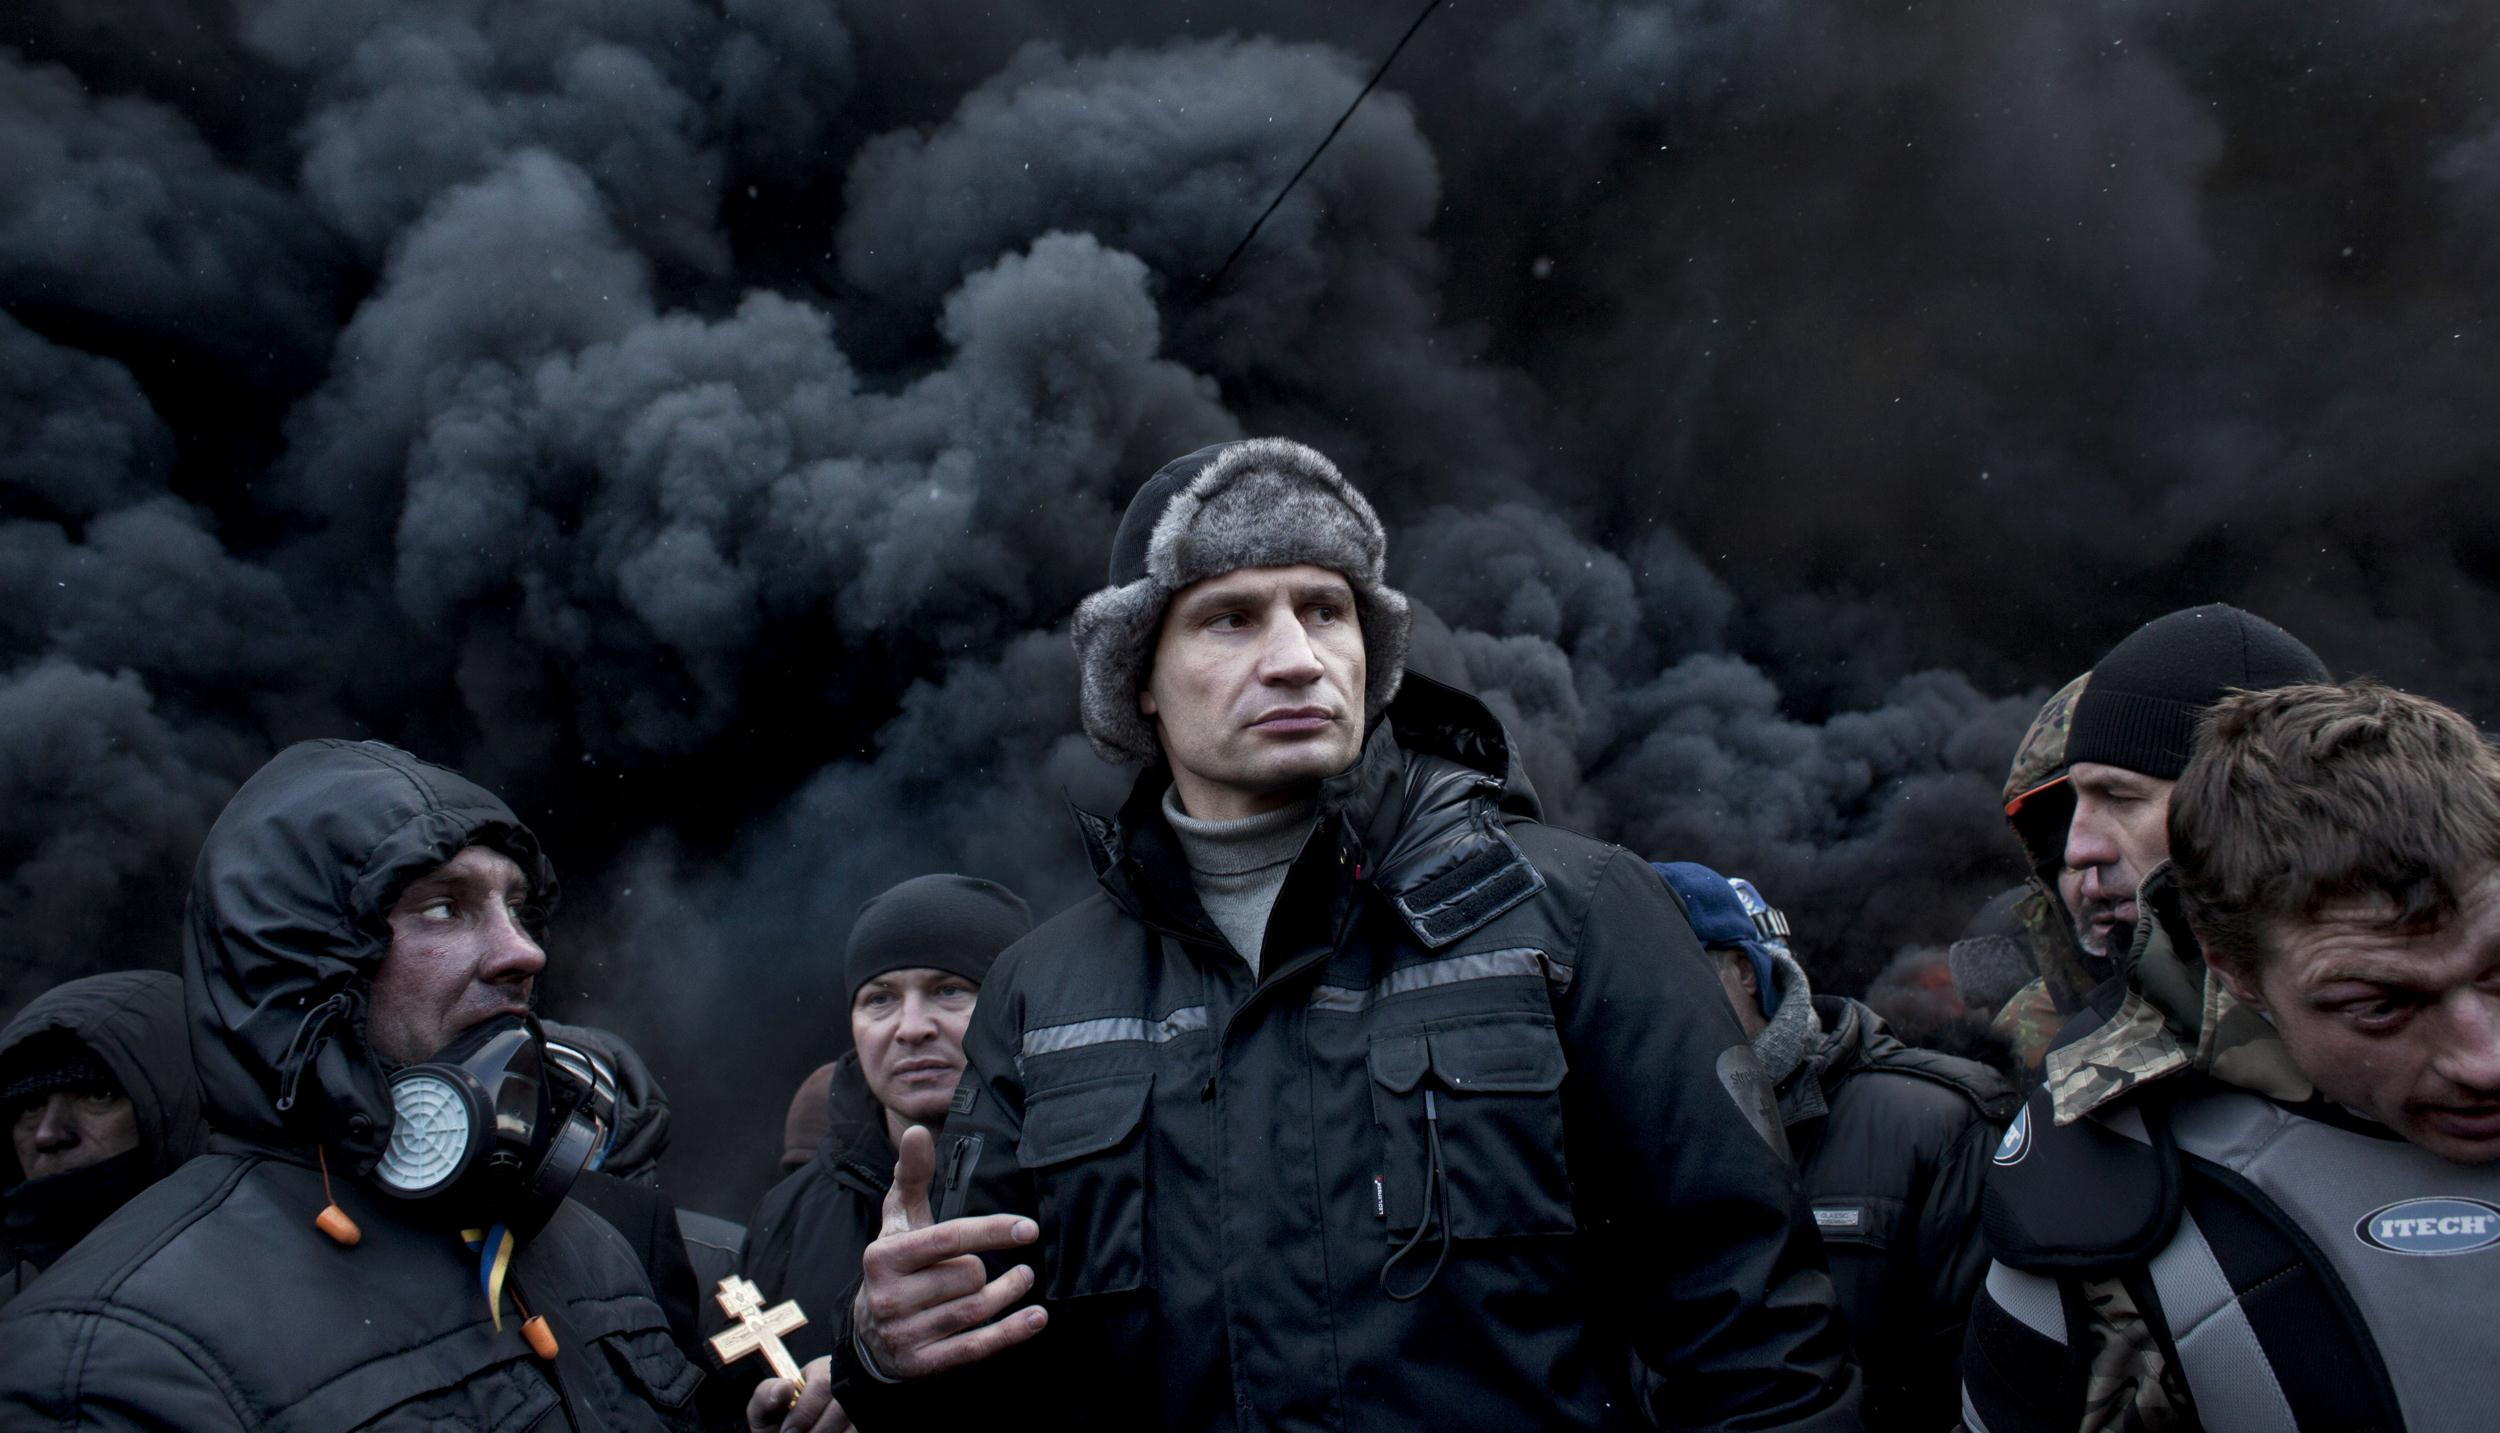 Image: Vitali Klitschko, Ukrainian opposition leader and former world champion boxer